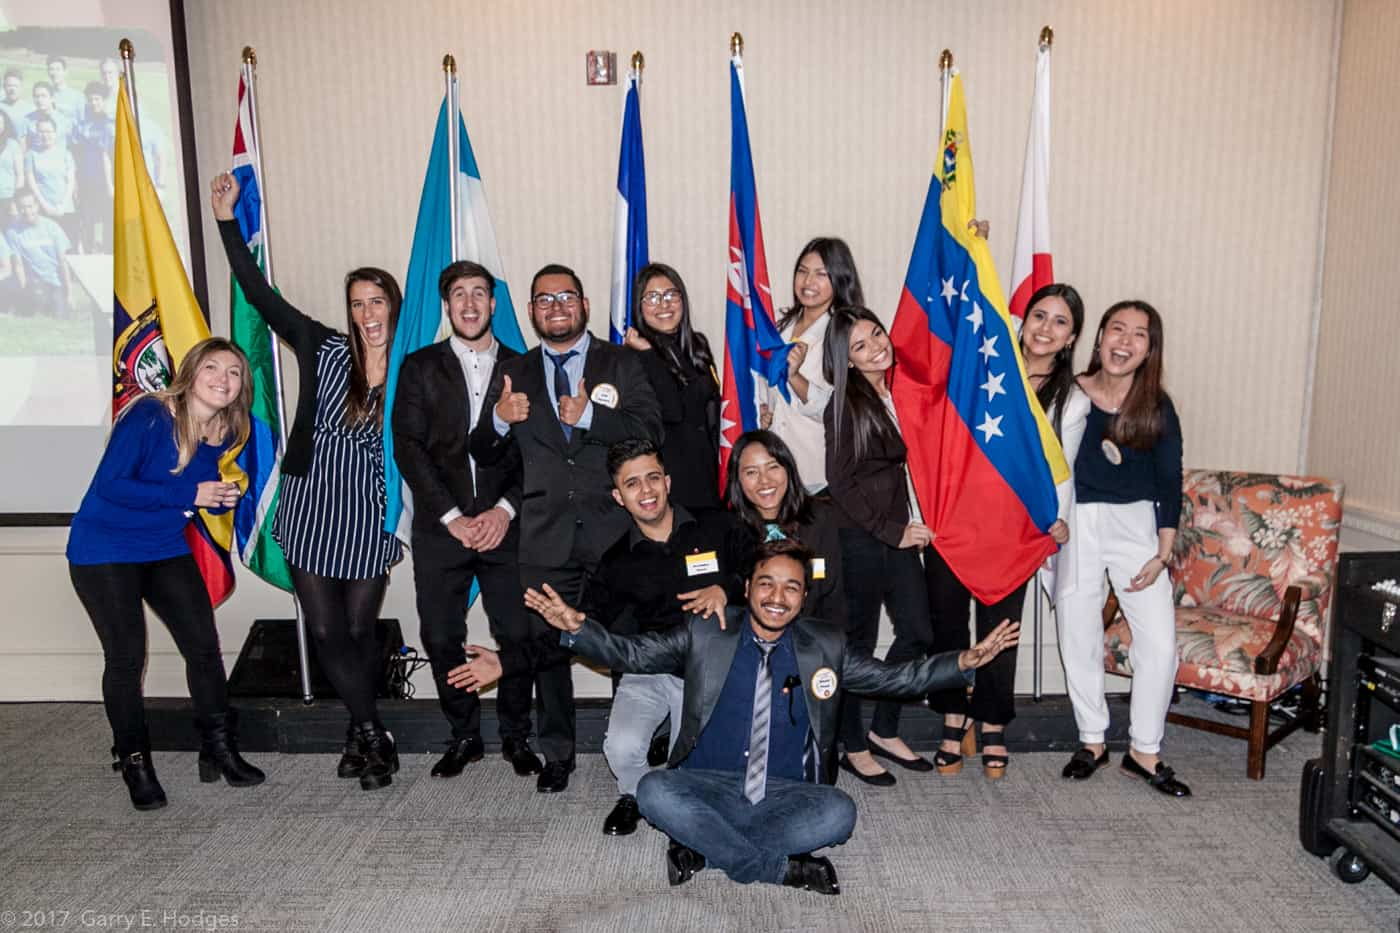 NC Wesleyan international students with rotary flags